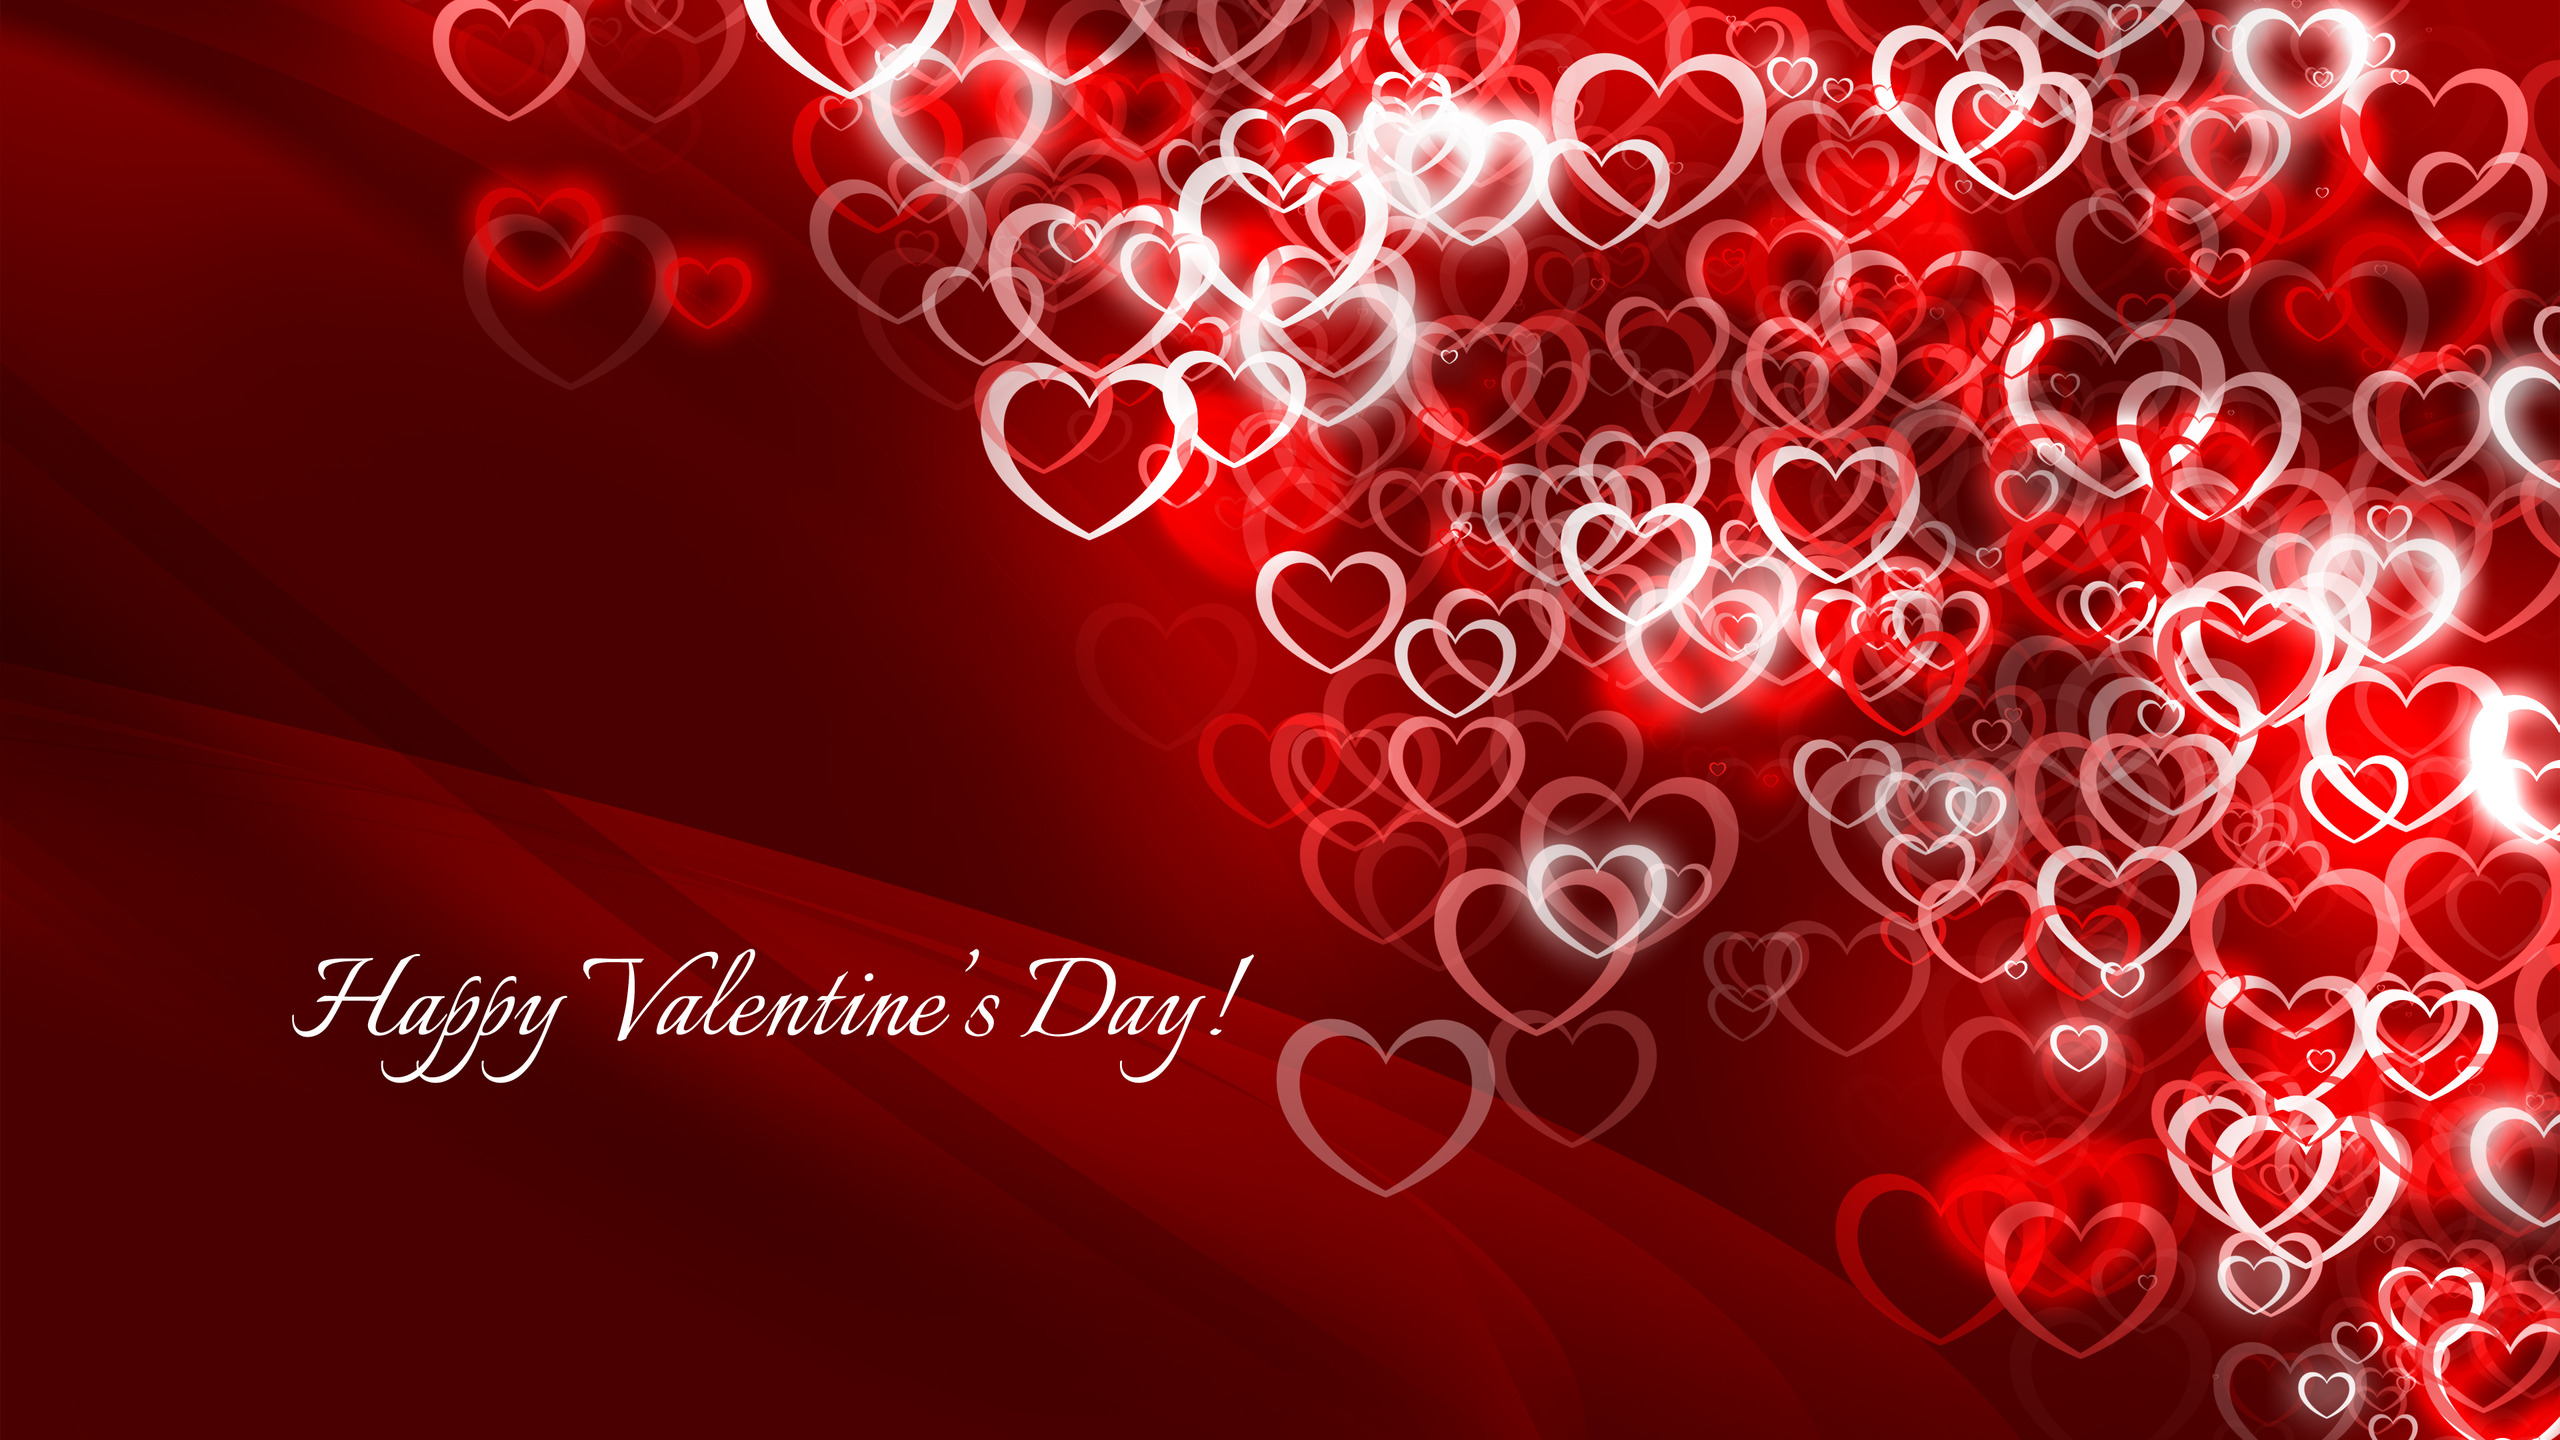 Valentines Day Wallpapers HD 2015 for Desktop Background 2560x1440